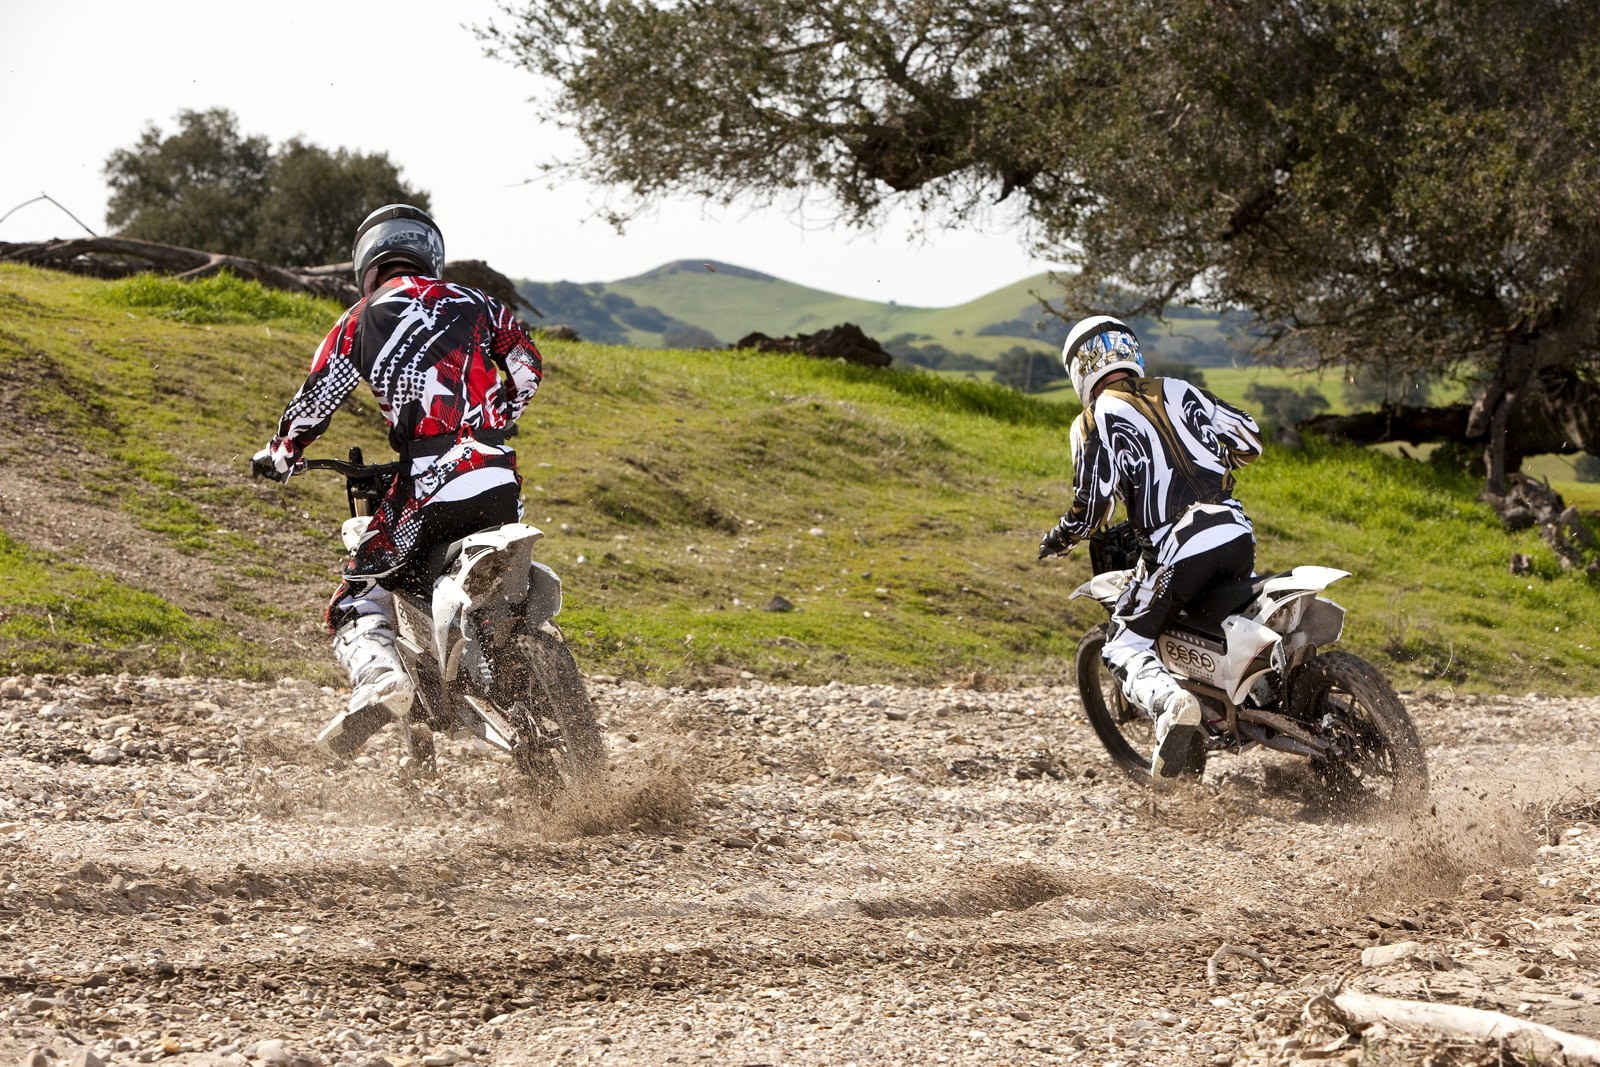 '.2010 Zero X Electric Motorcycle: Zaca Station - Playing in Rocks.'